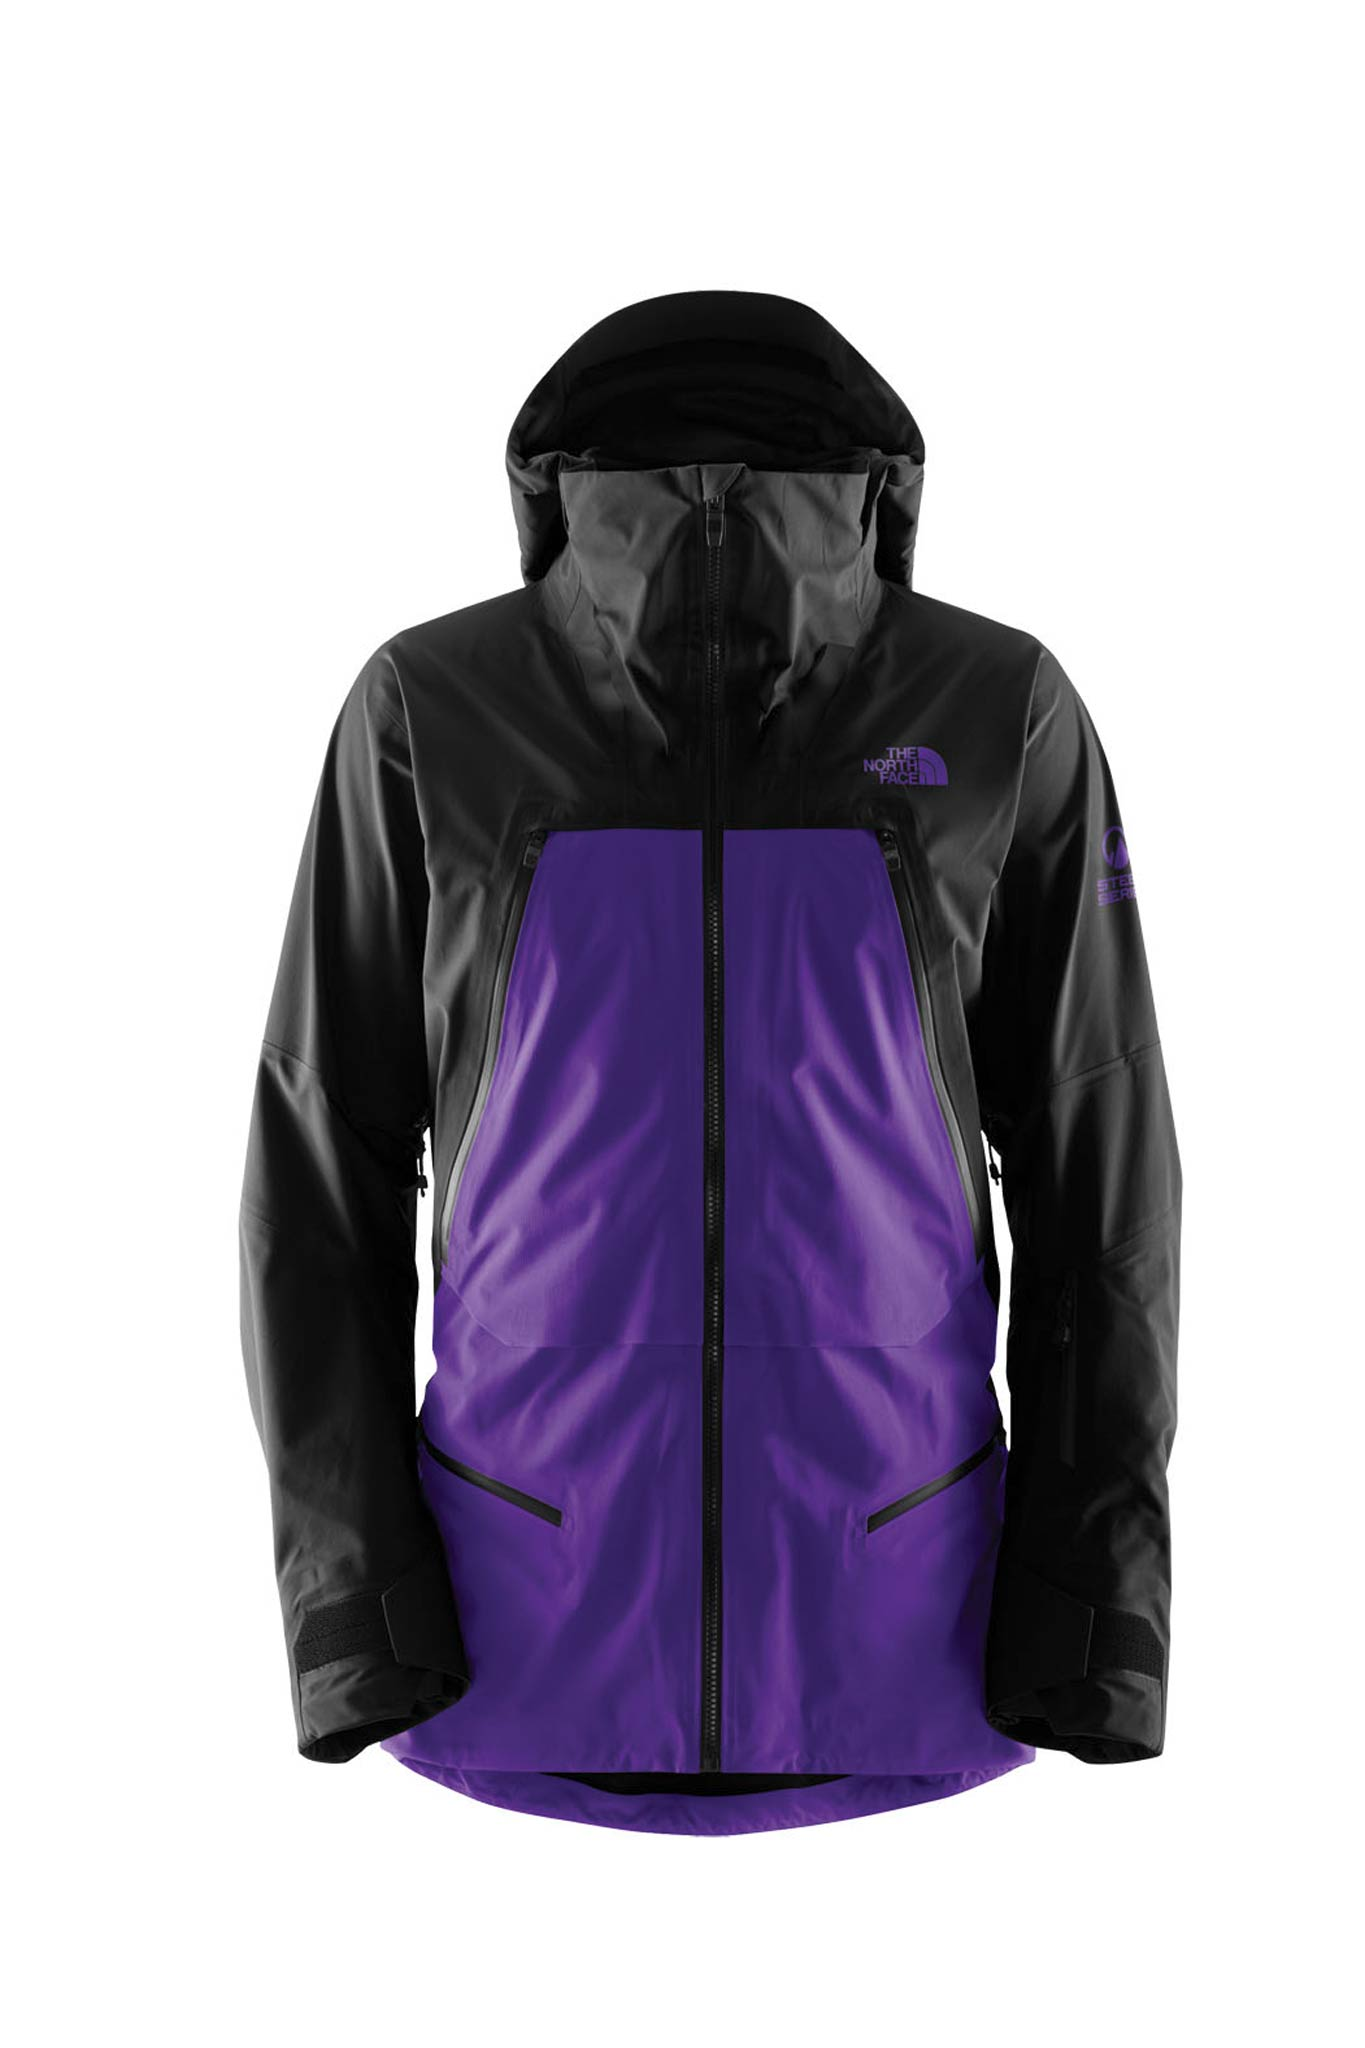 The North Face: Purist Jacket 18/19